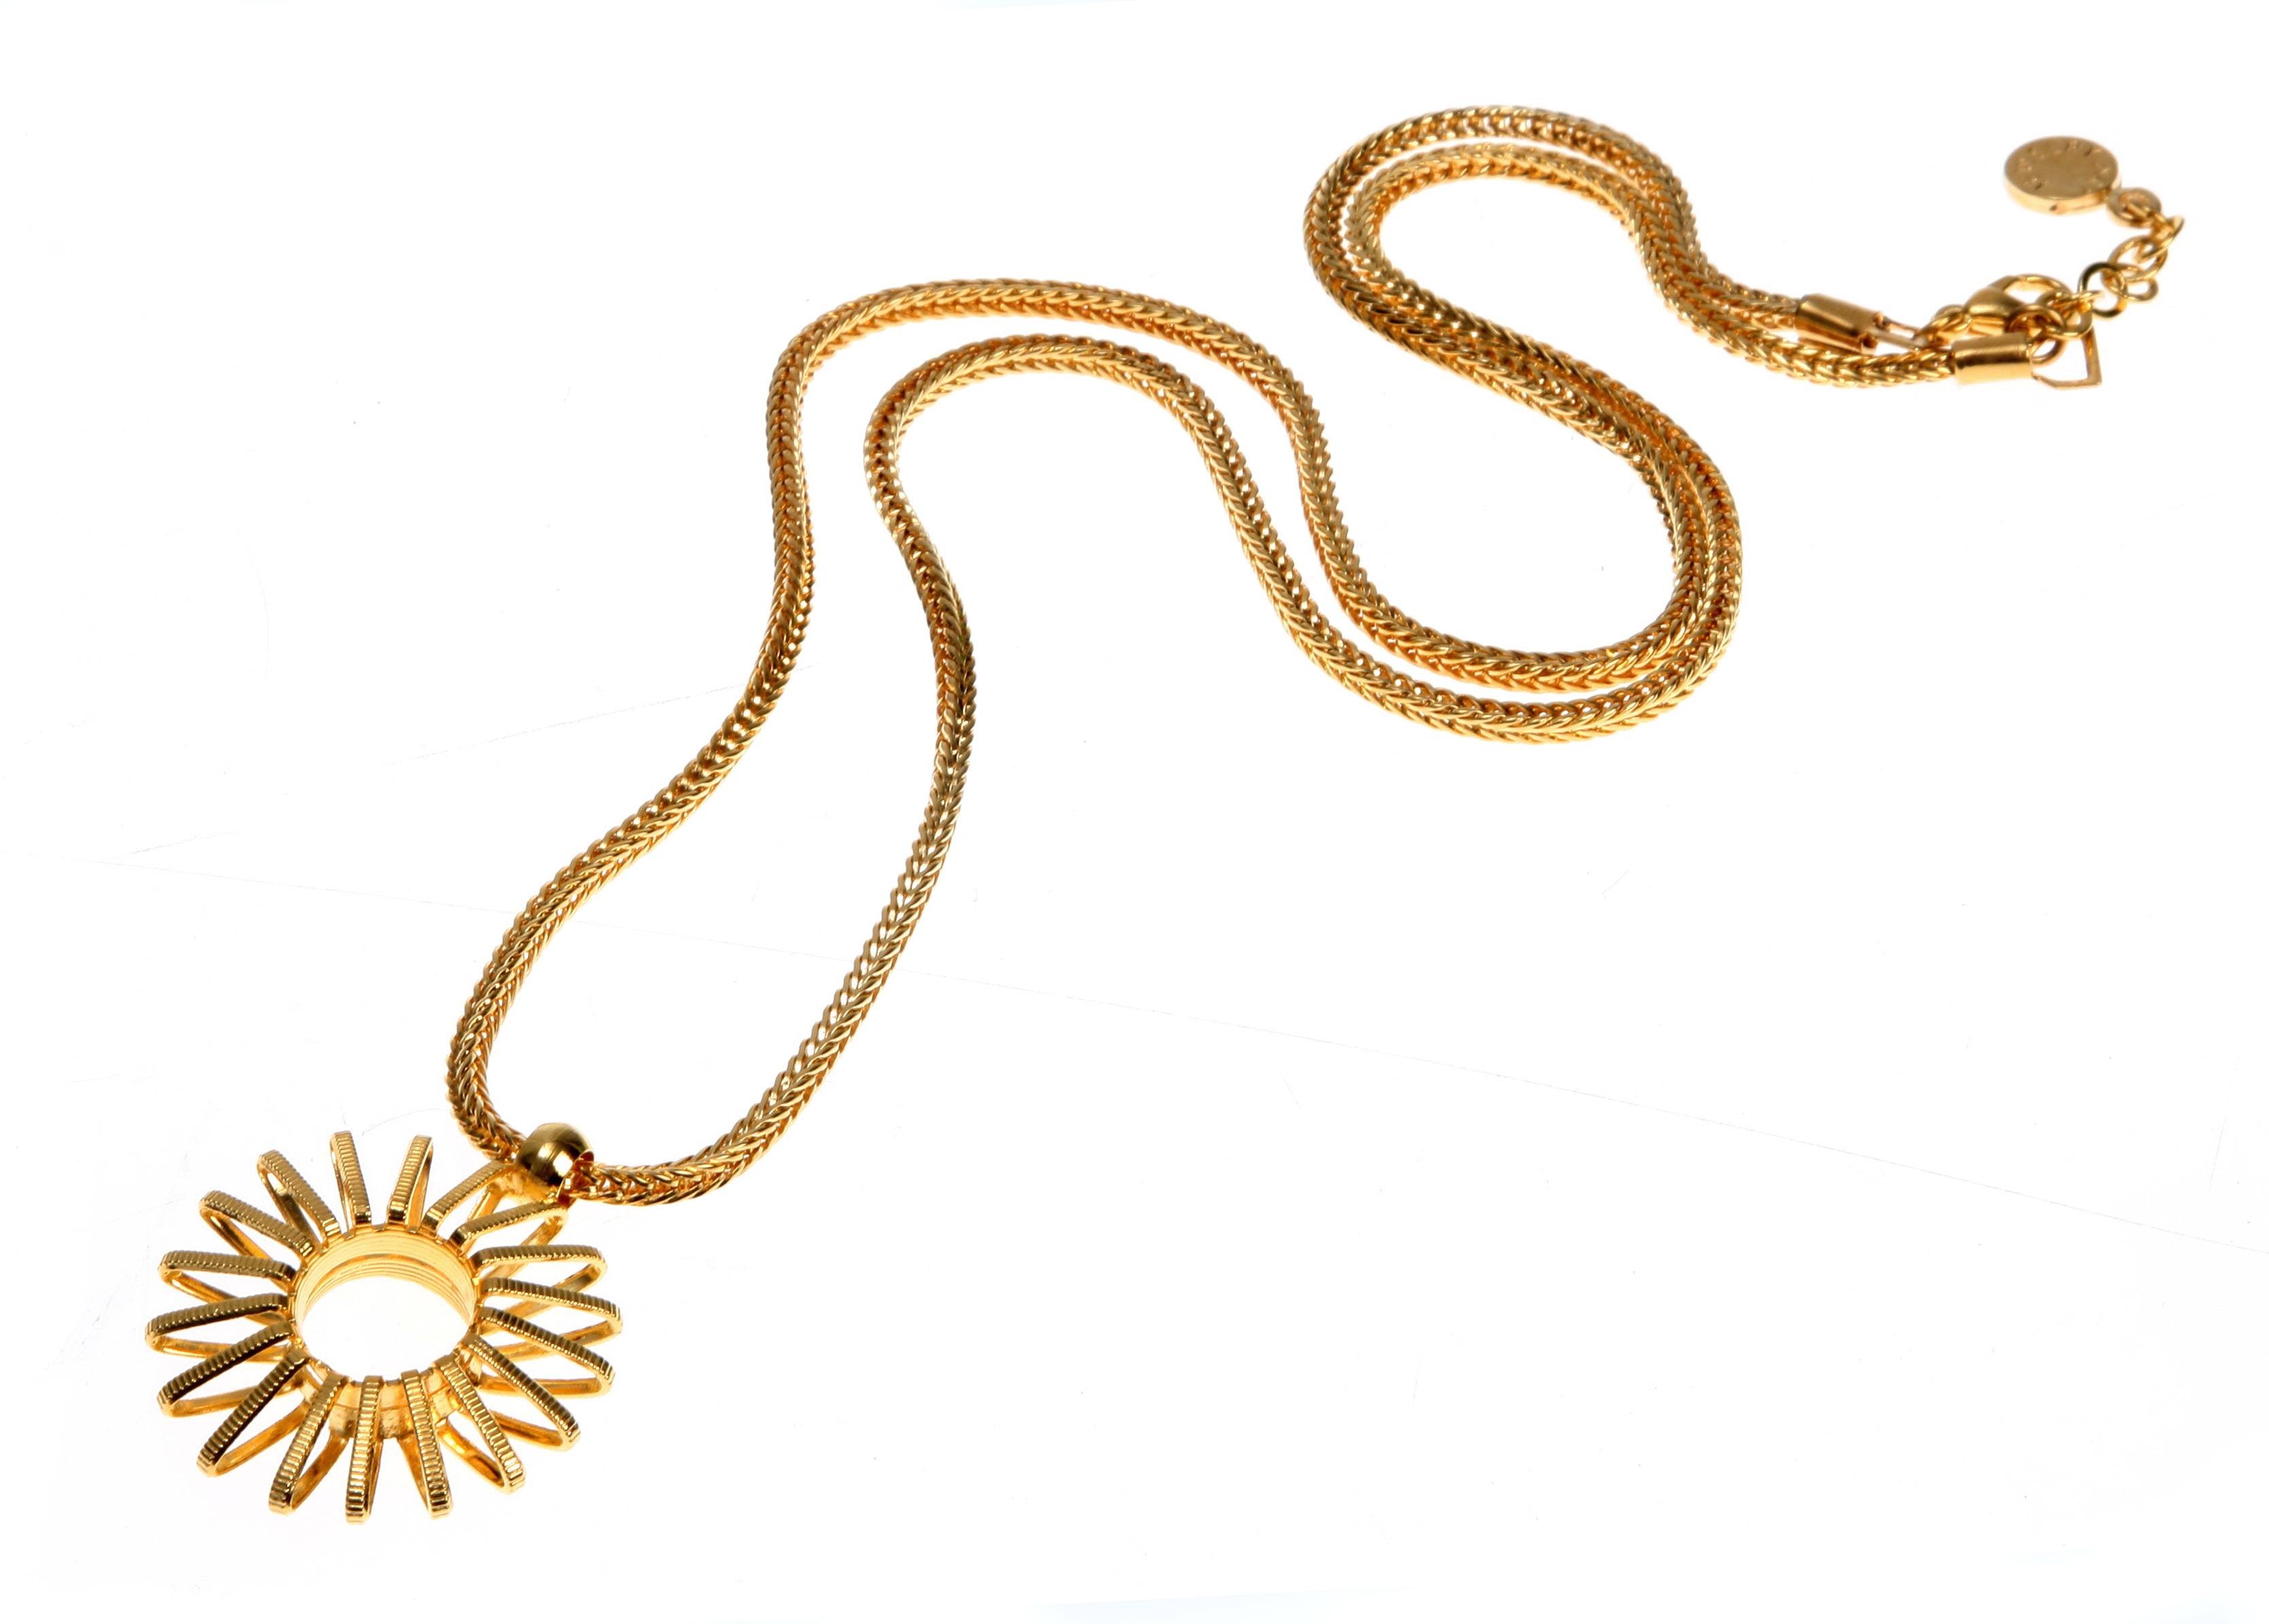 A gold sun charm on a gold chain on a white background